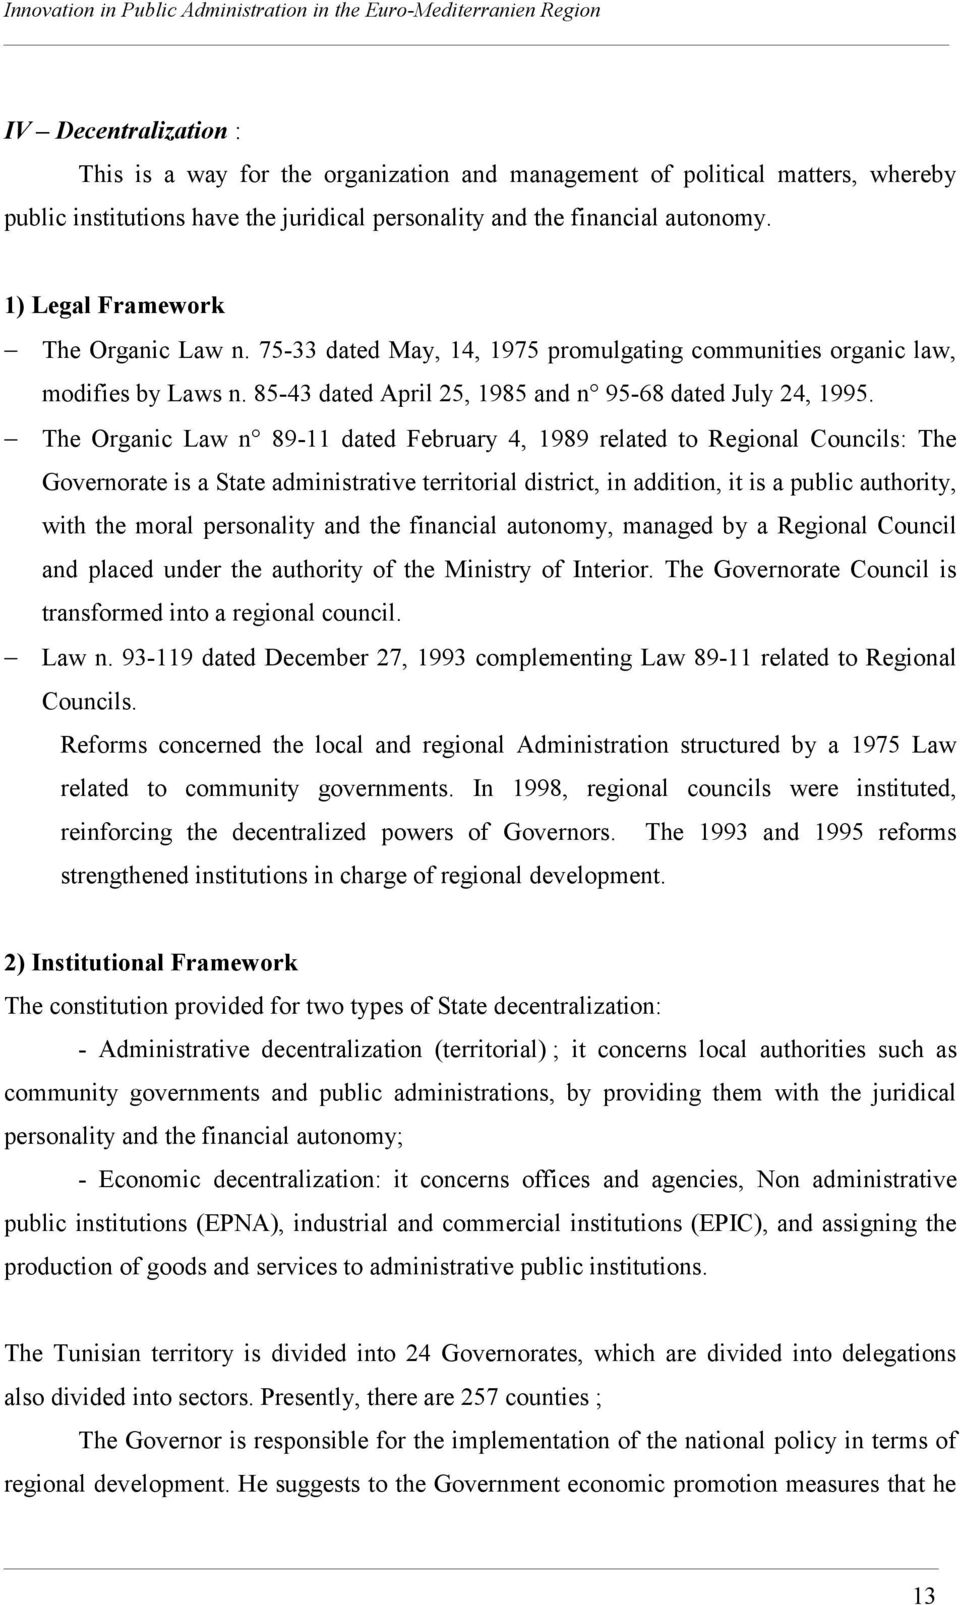 The Organic Law n 89-11 dated February 4, 1989 related to Regional Councils: The Governorate is a State administrative territorial district, in addition, it is a public authority, with the moral